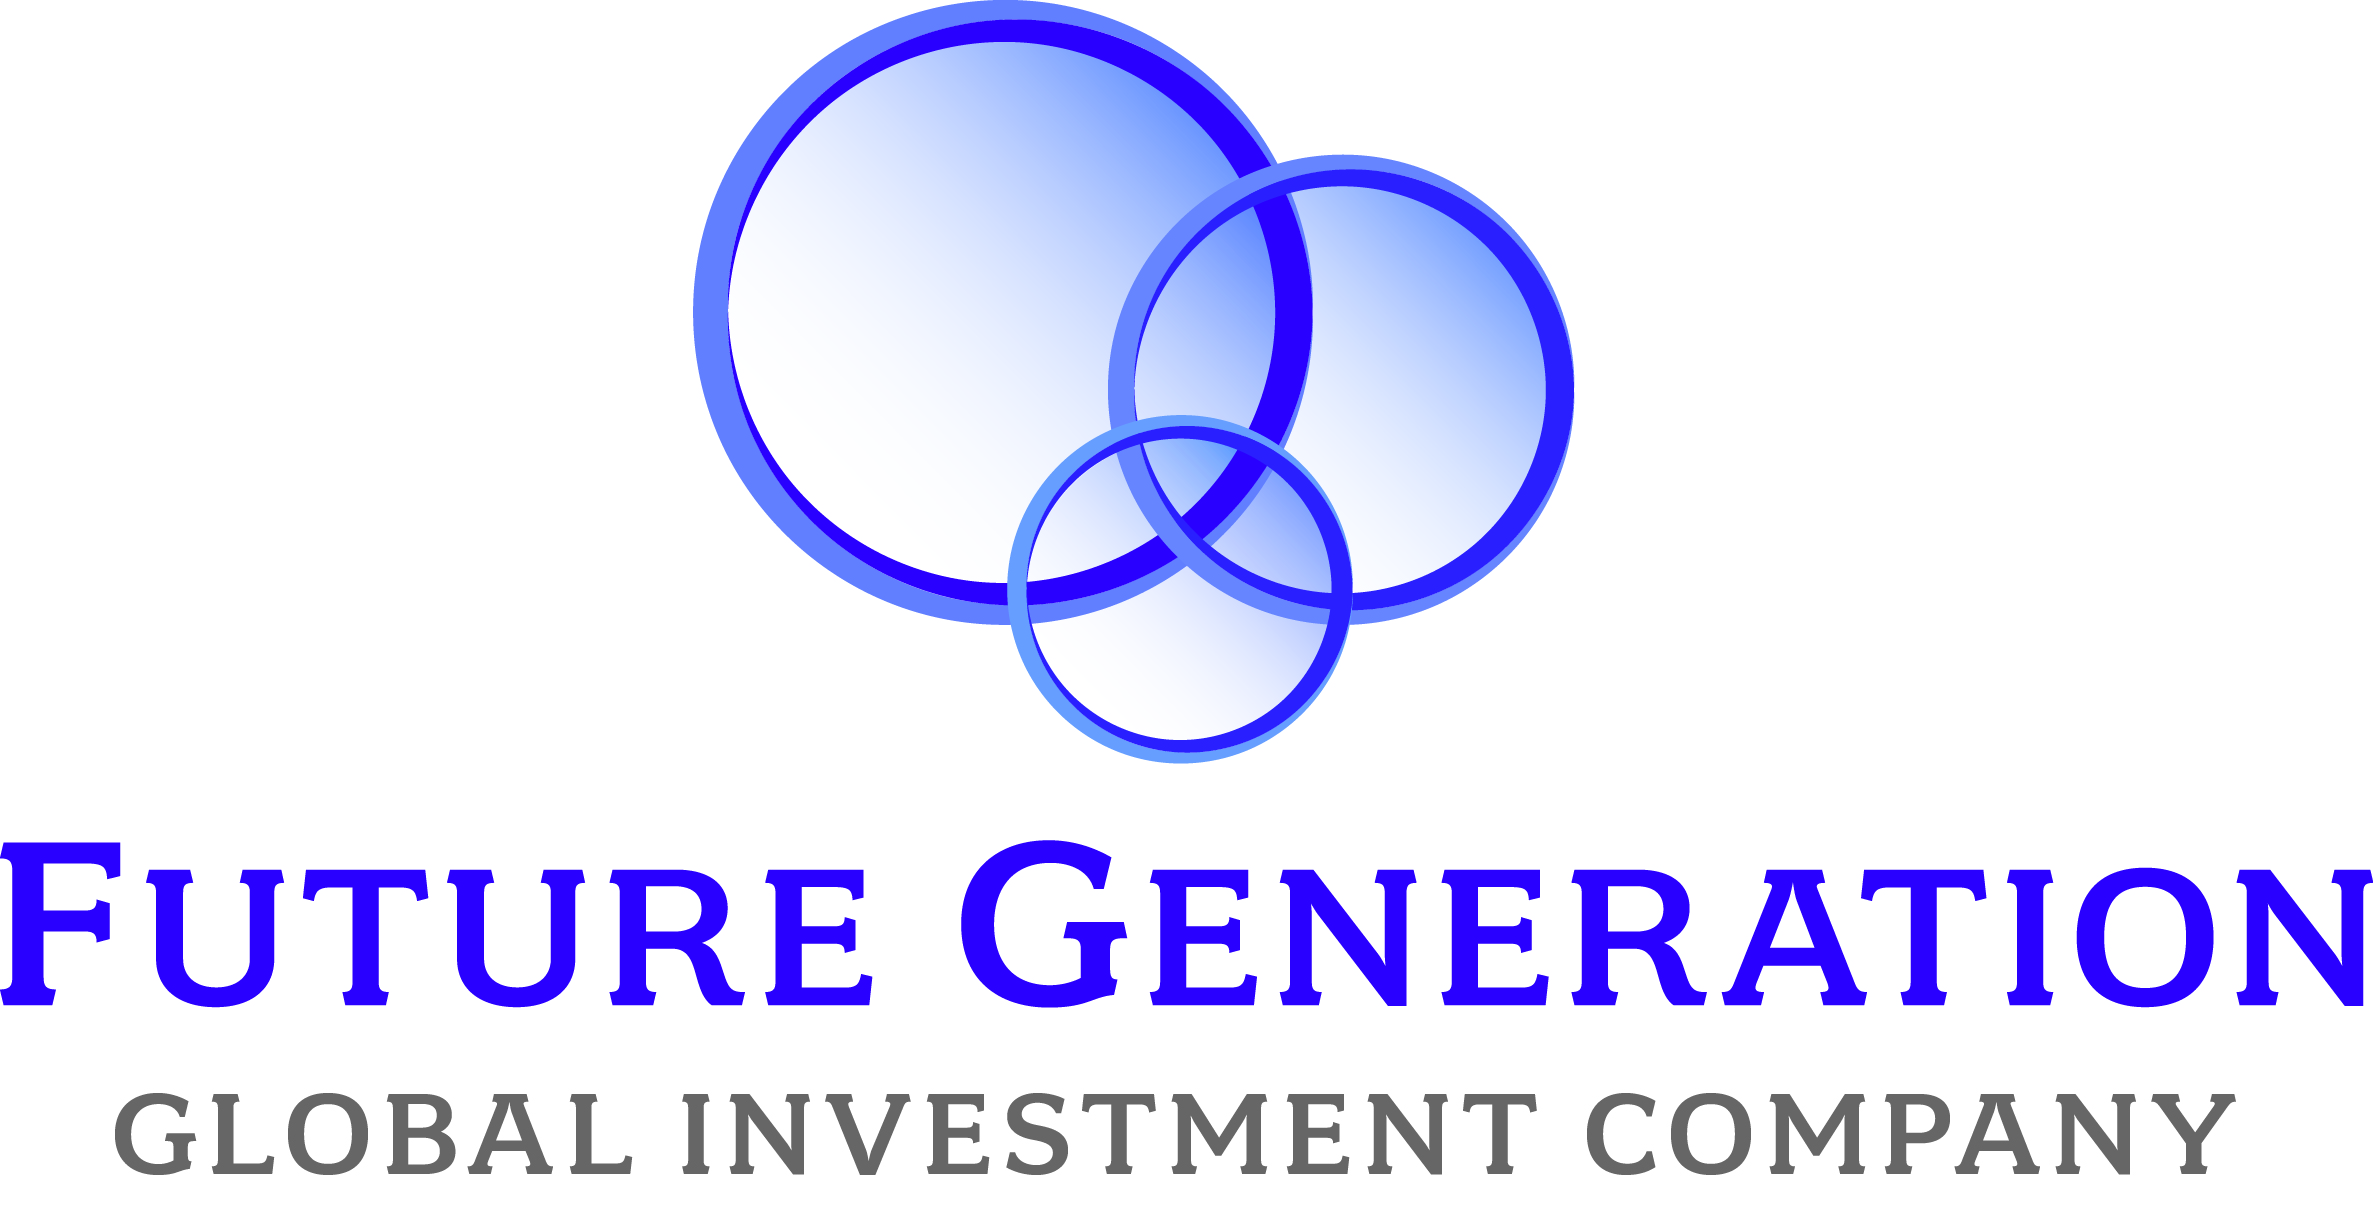 Future Generation Global Investment Company